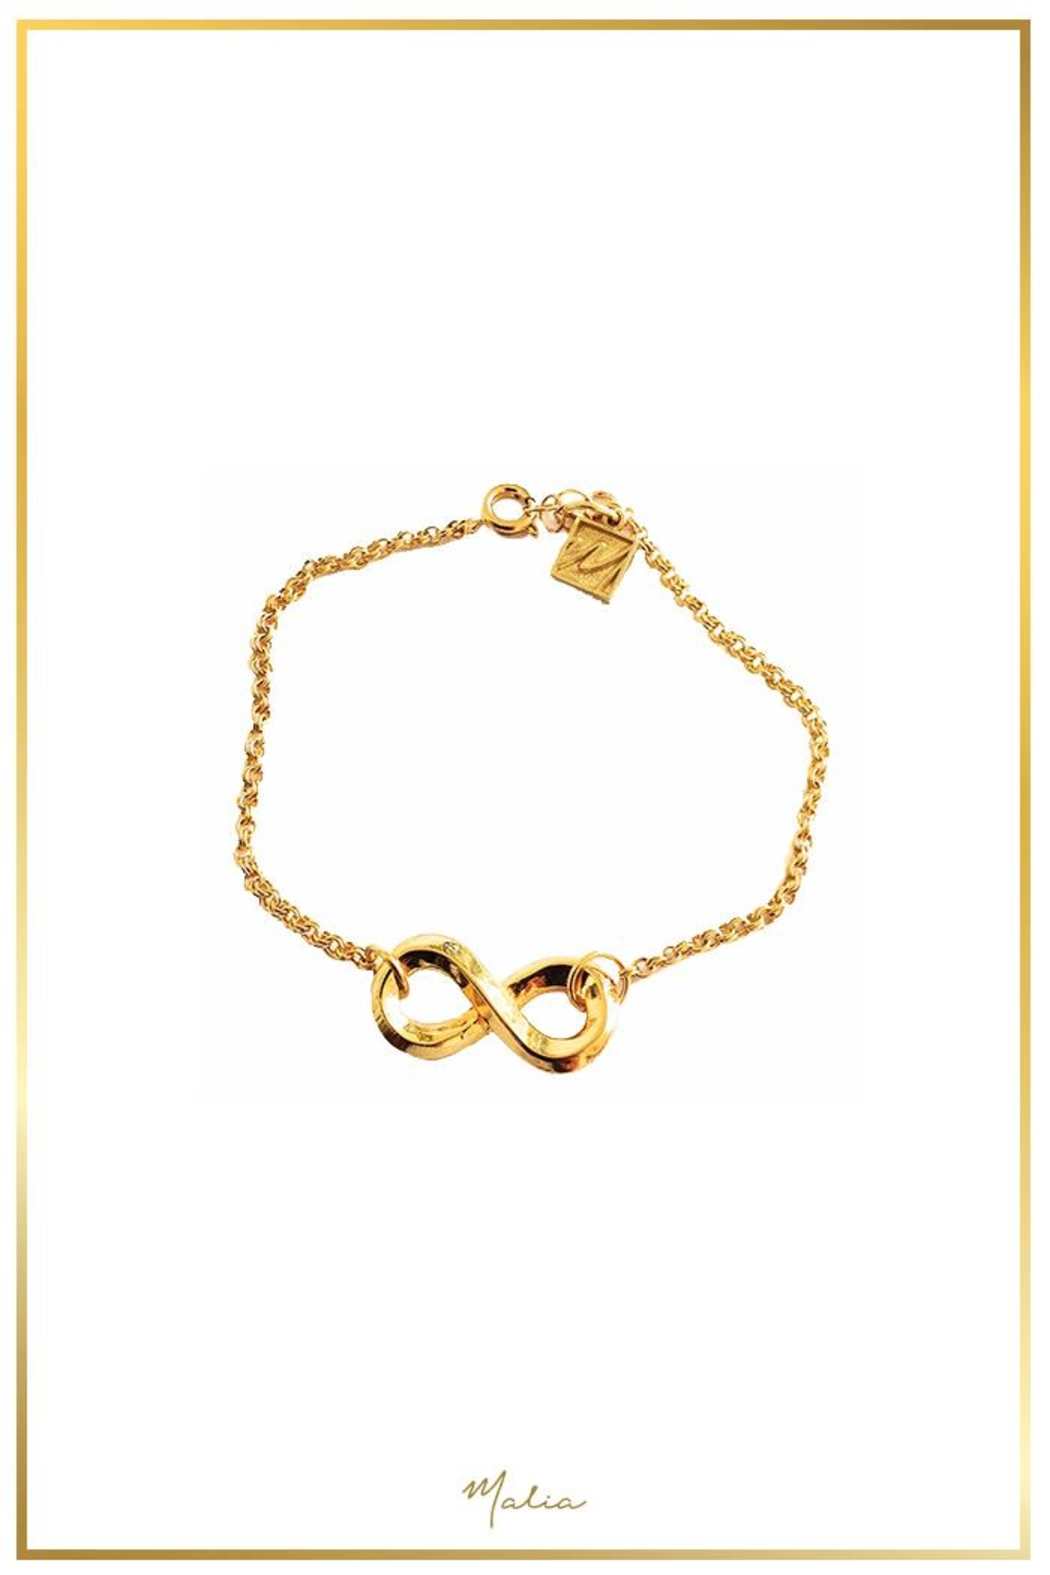 Malia Jewelry Infinite Bracelet - Main Image